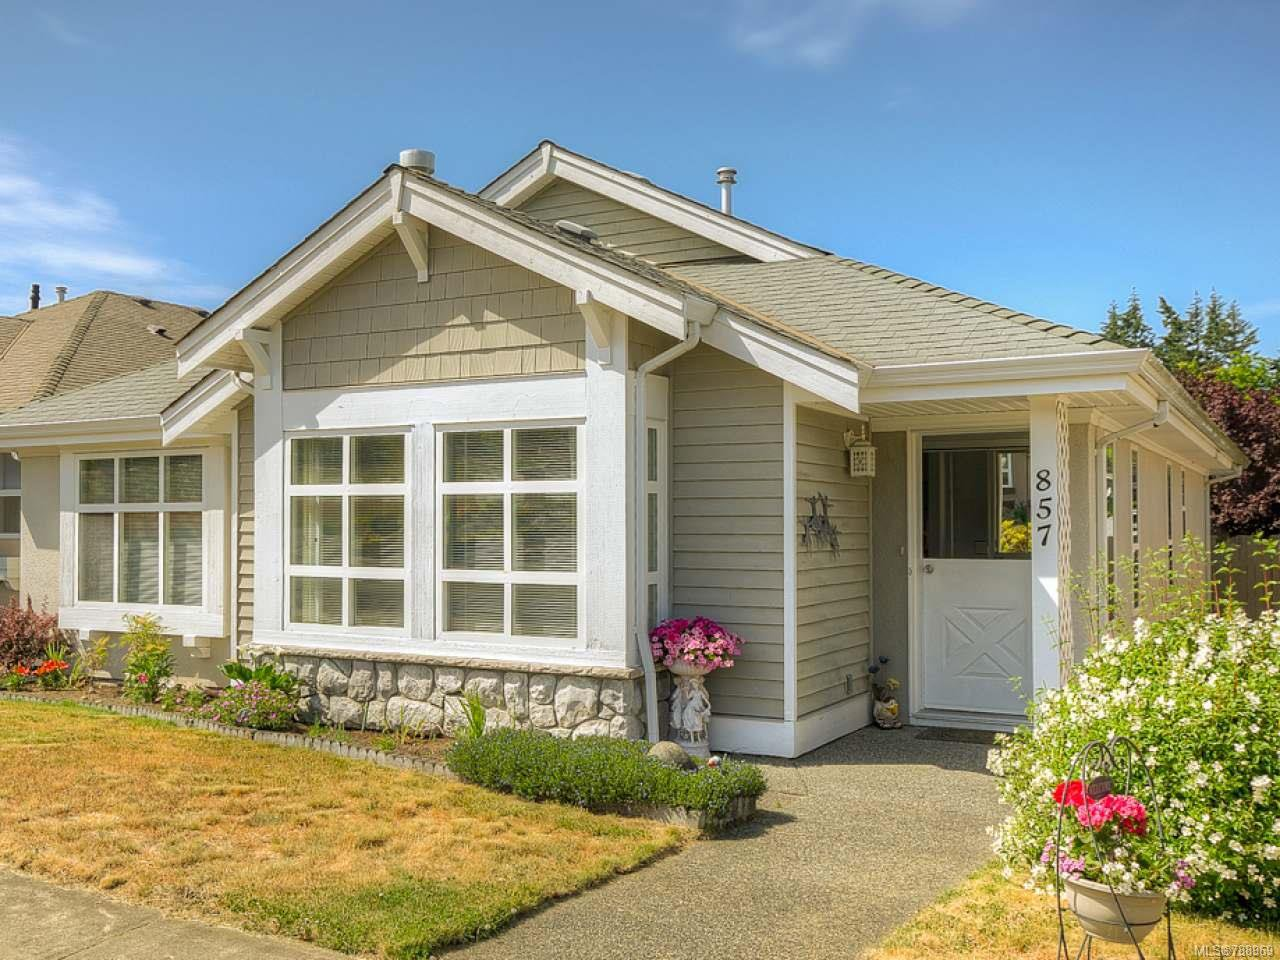 Main Photo: 857 Edgeware Ave in PARKSVILLE: PQ Parksville House for sale (Parksville/Qualicum)  : MLS®# 788969